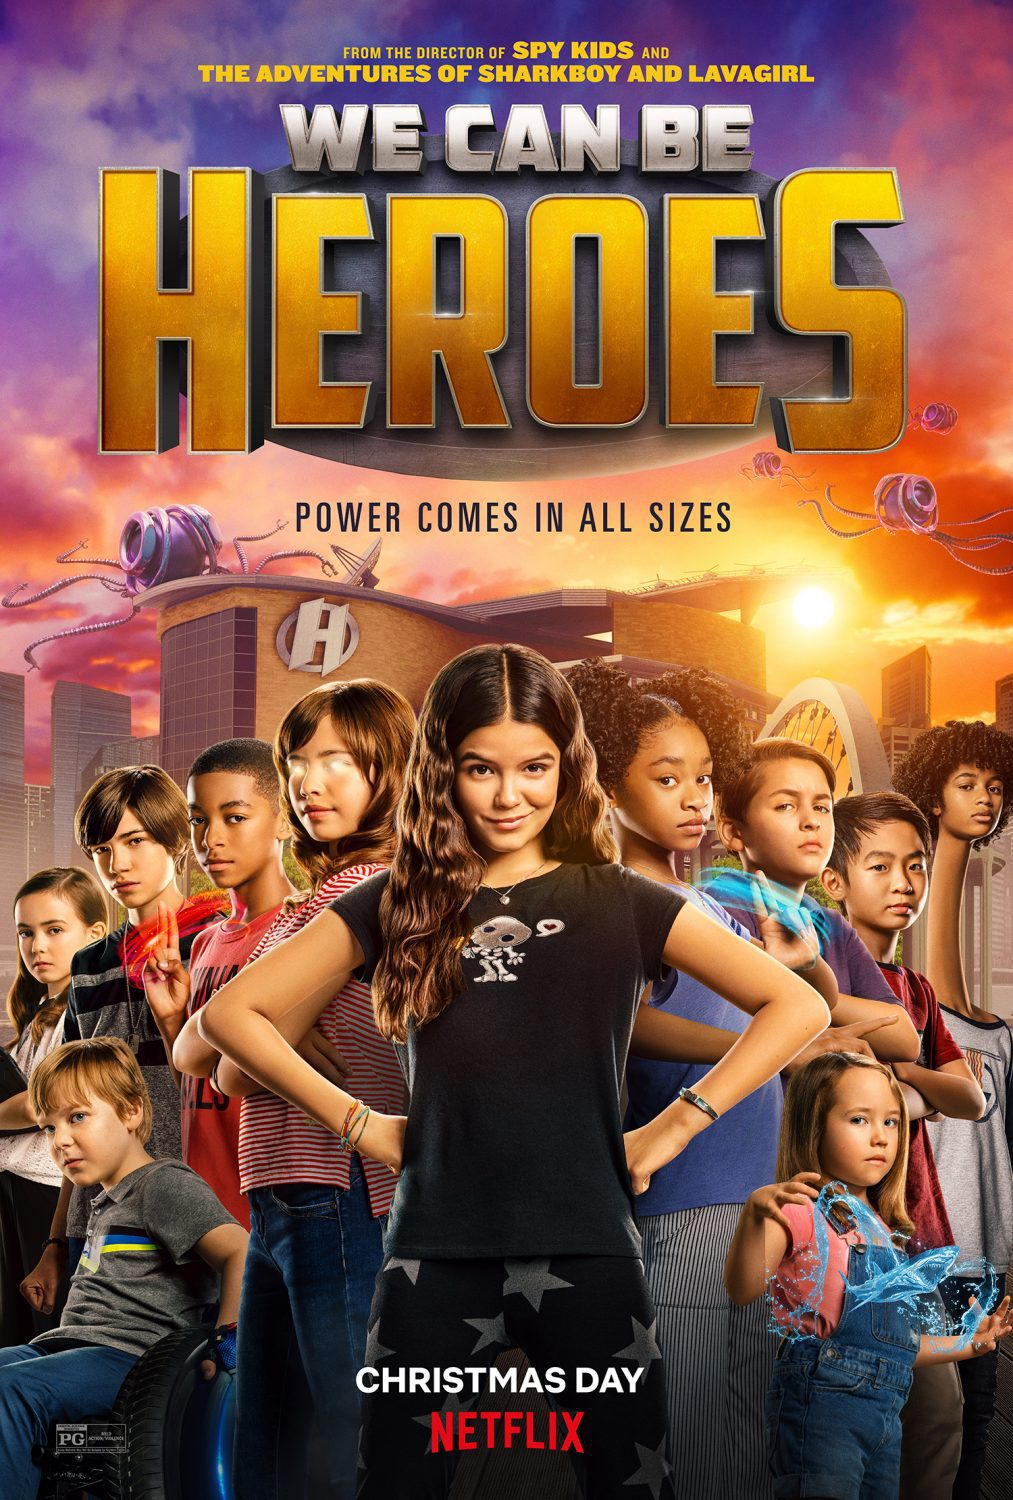 We Can Be Heroes Netflix Cover Image